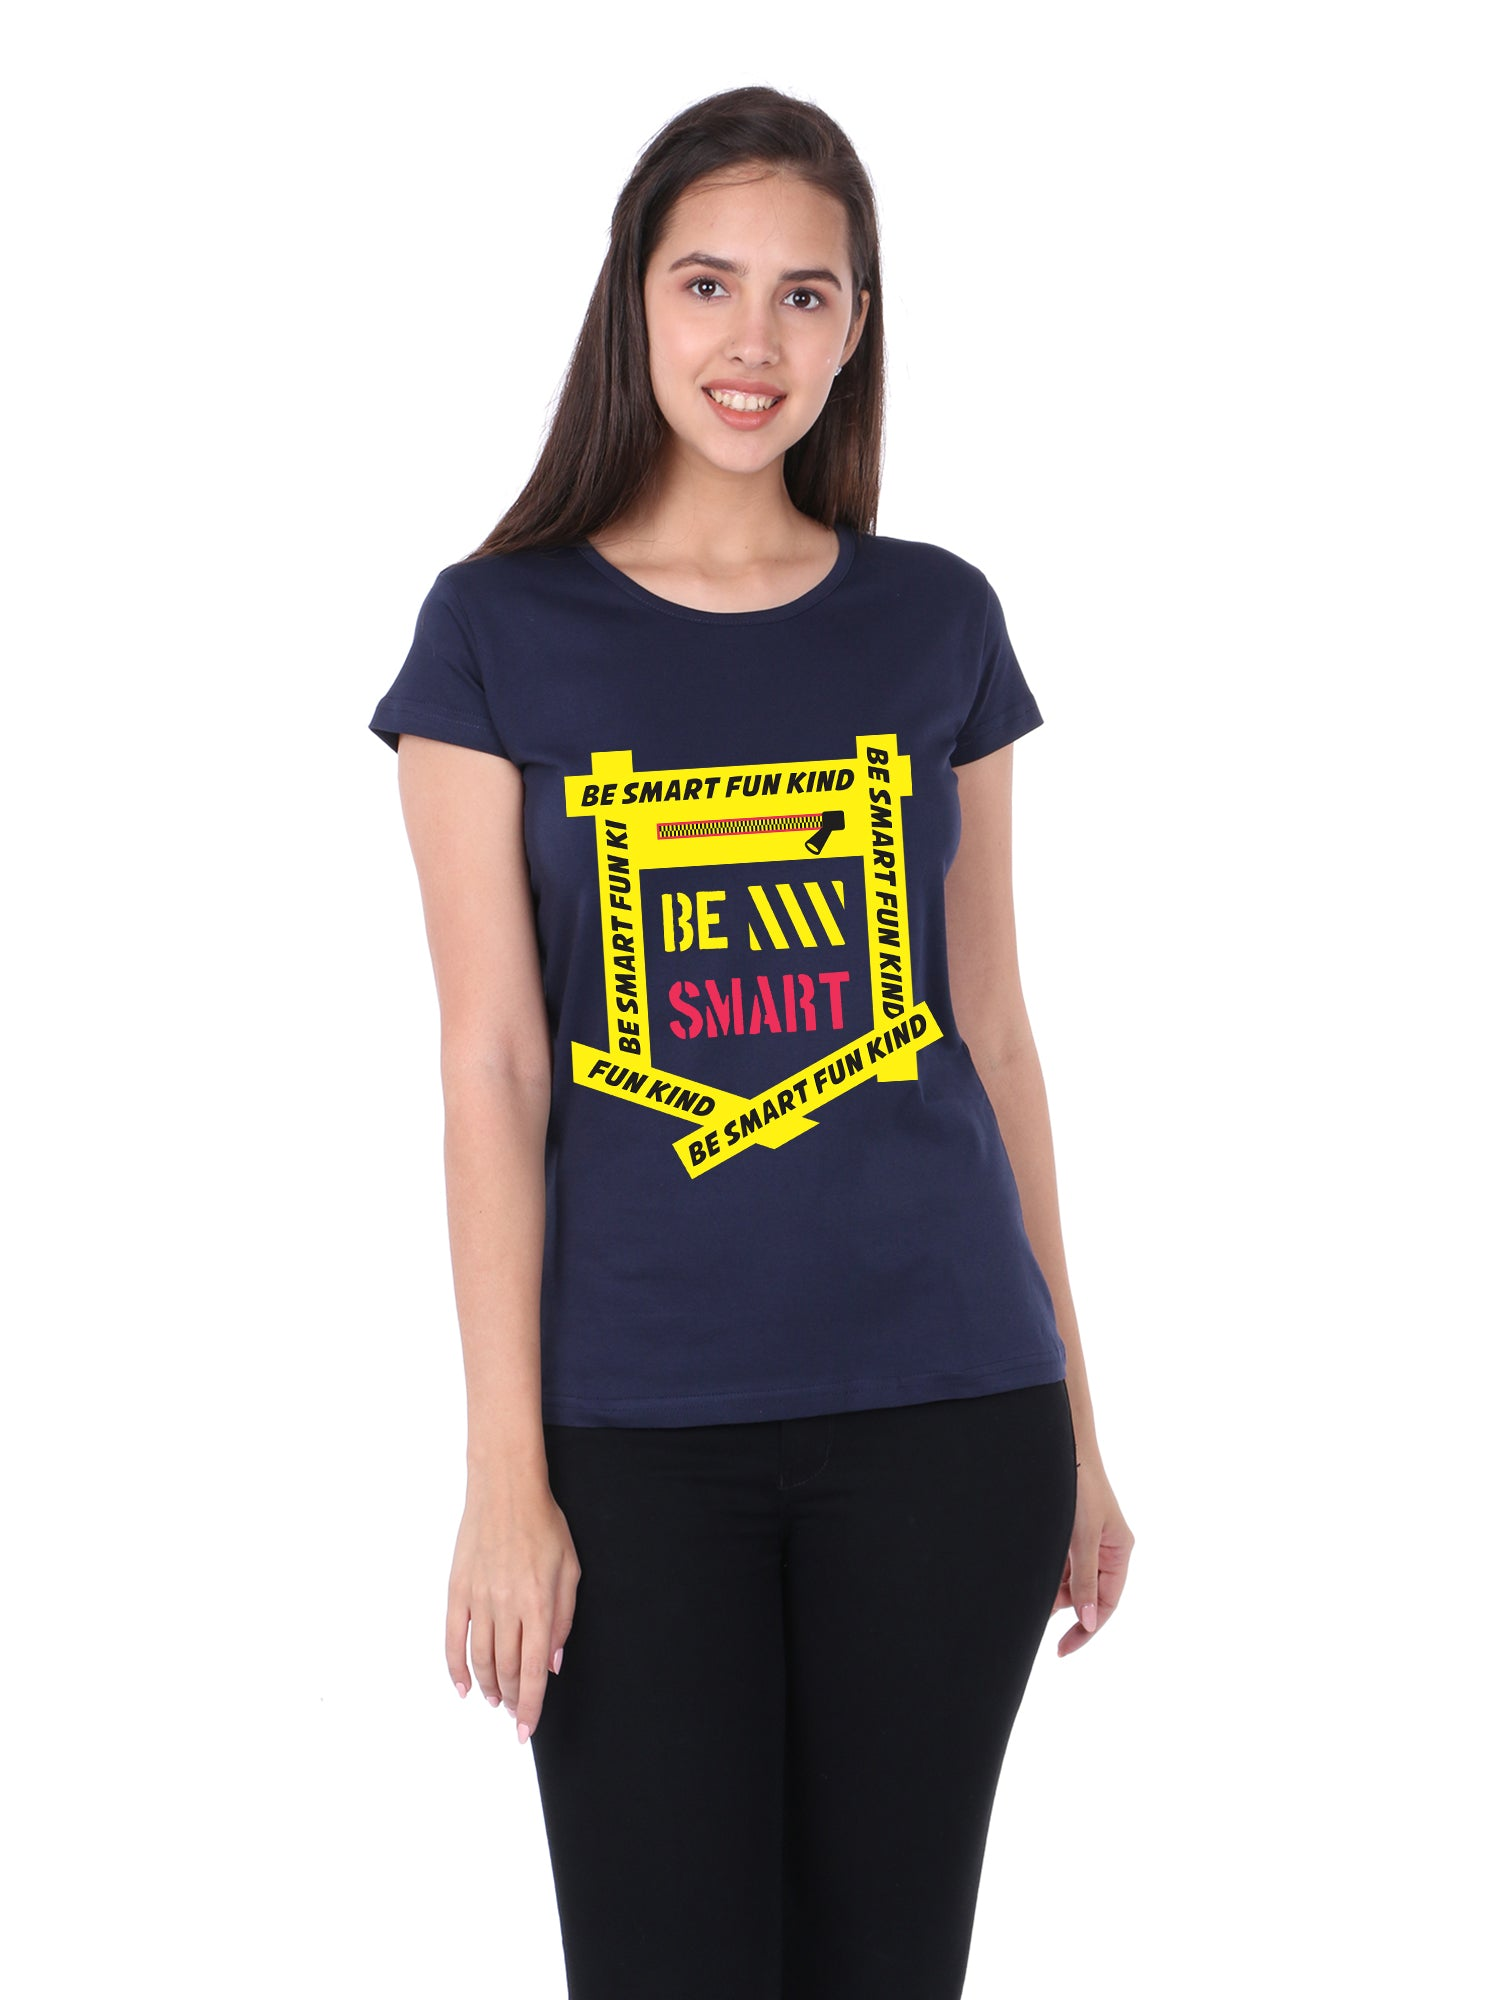 Bueno Life Women's Cotton Printed T-Shirt - Be Smart Fun Kind (Navy Blue)